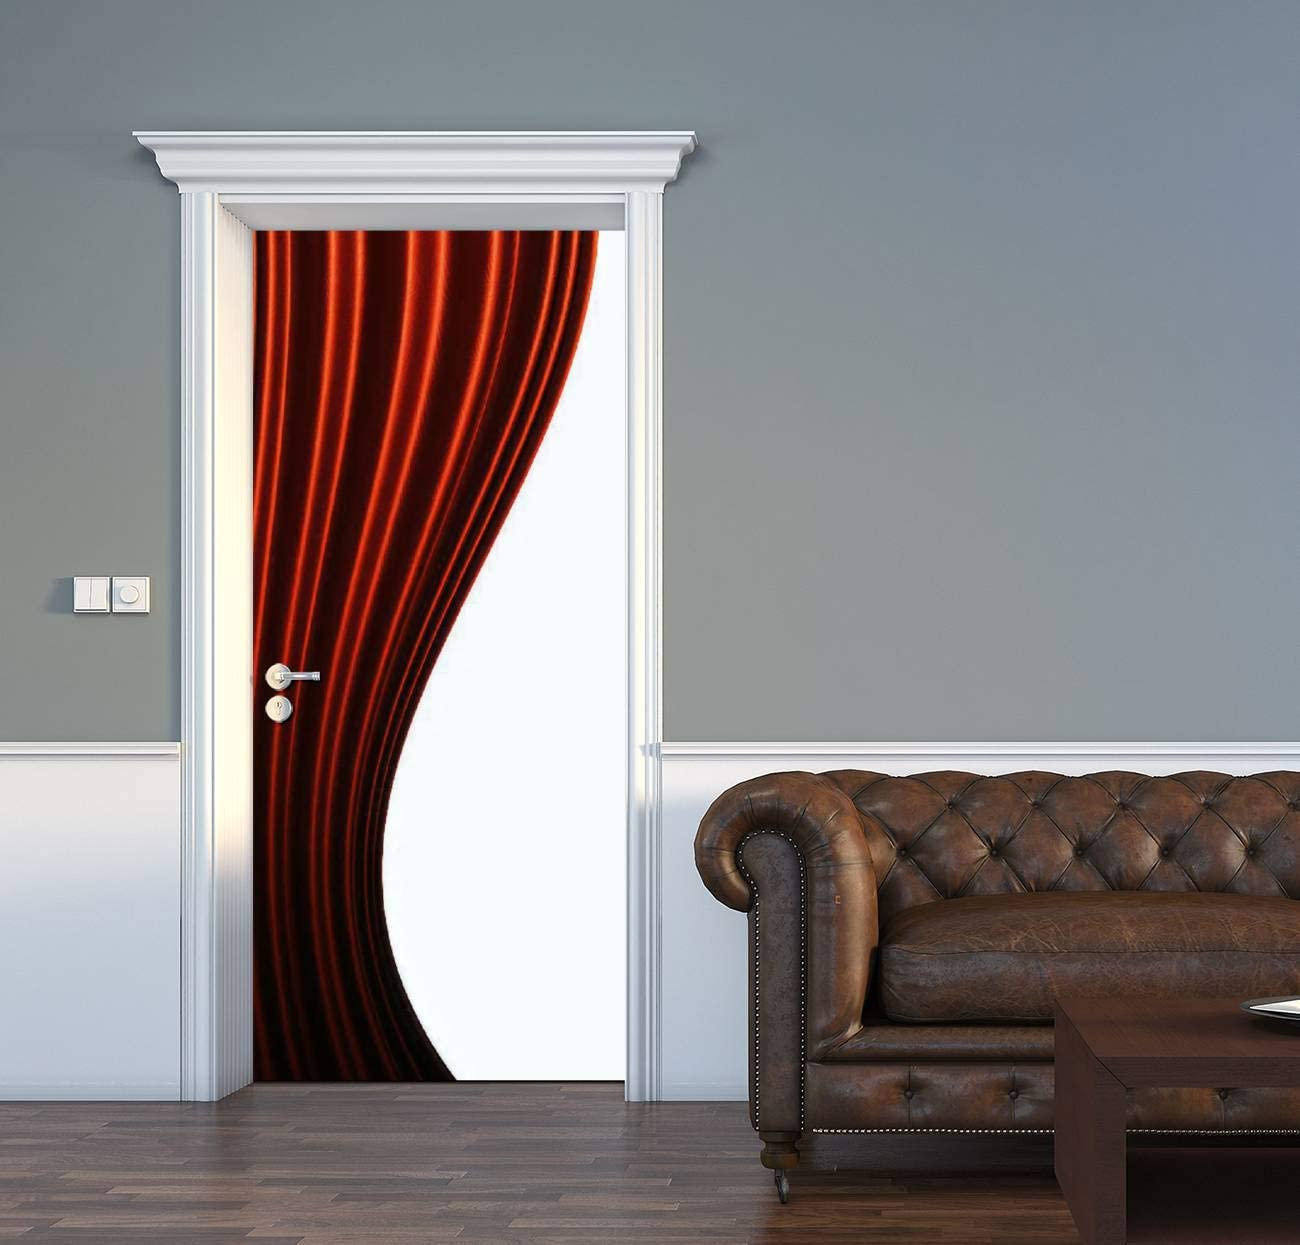 AceChic Door Decal Beautiful Background Tulsa Mall Curtain List price red